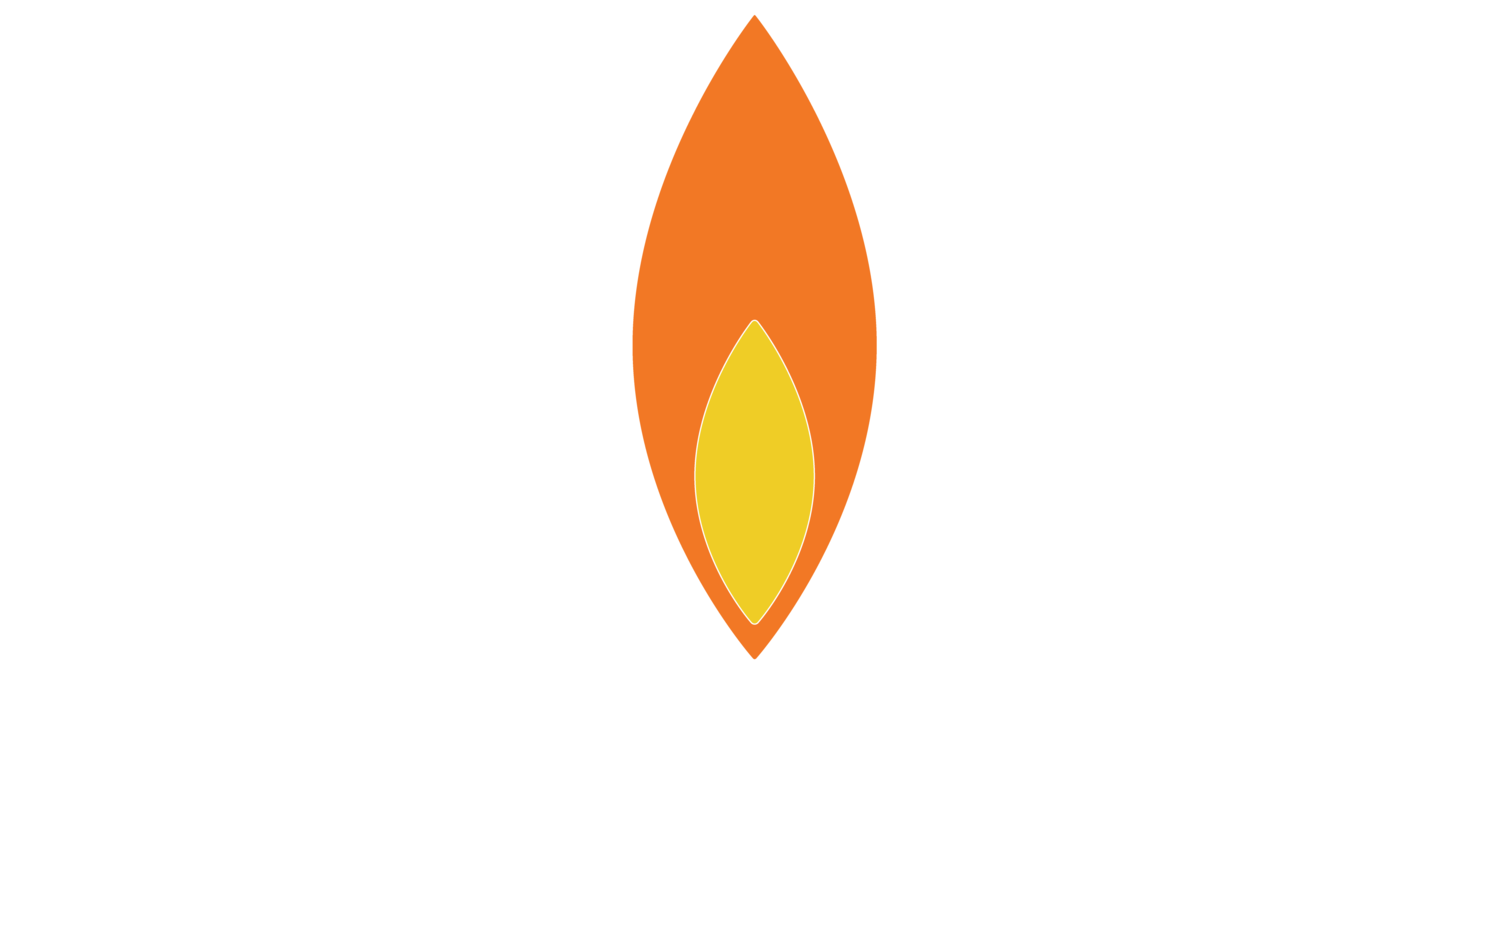 Whole Body Energy